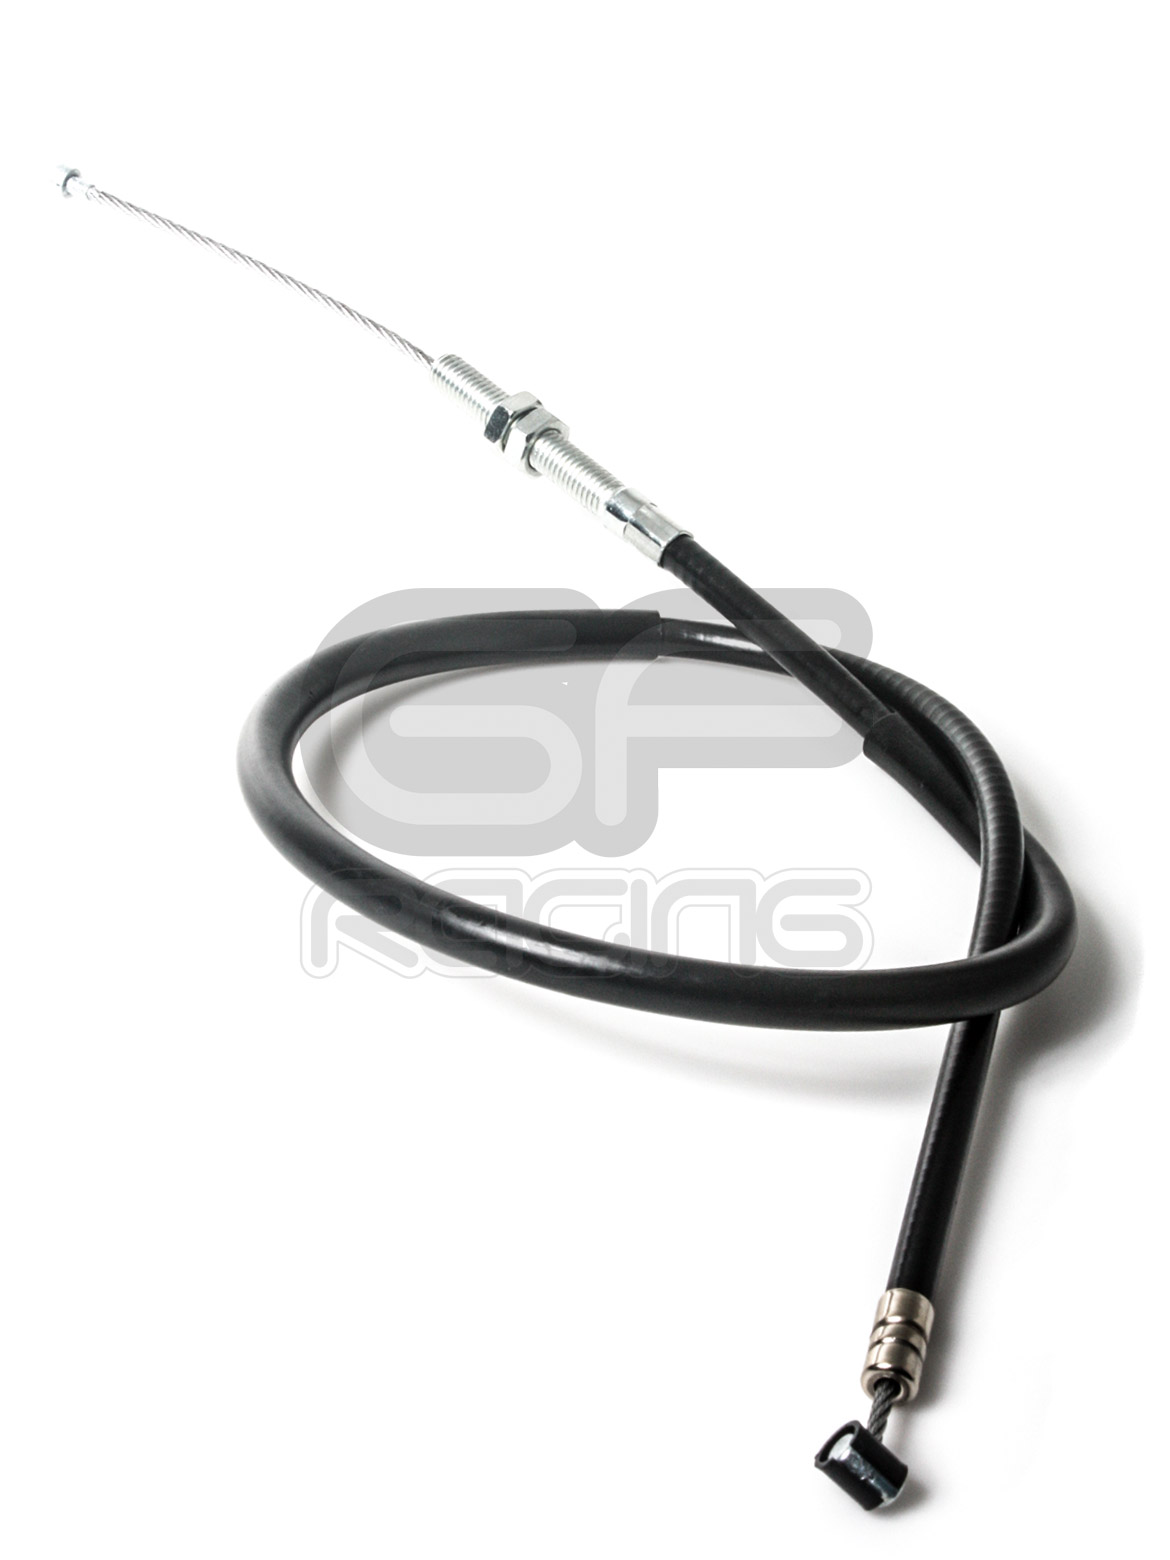 VFR400 NC30 CLUTCH CABLE